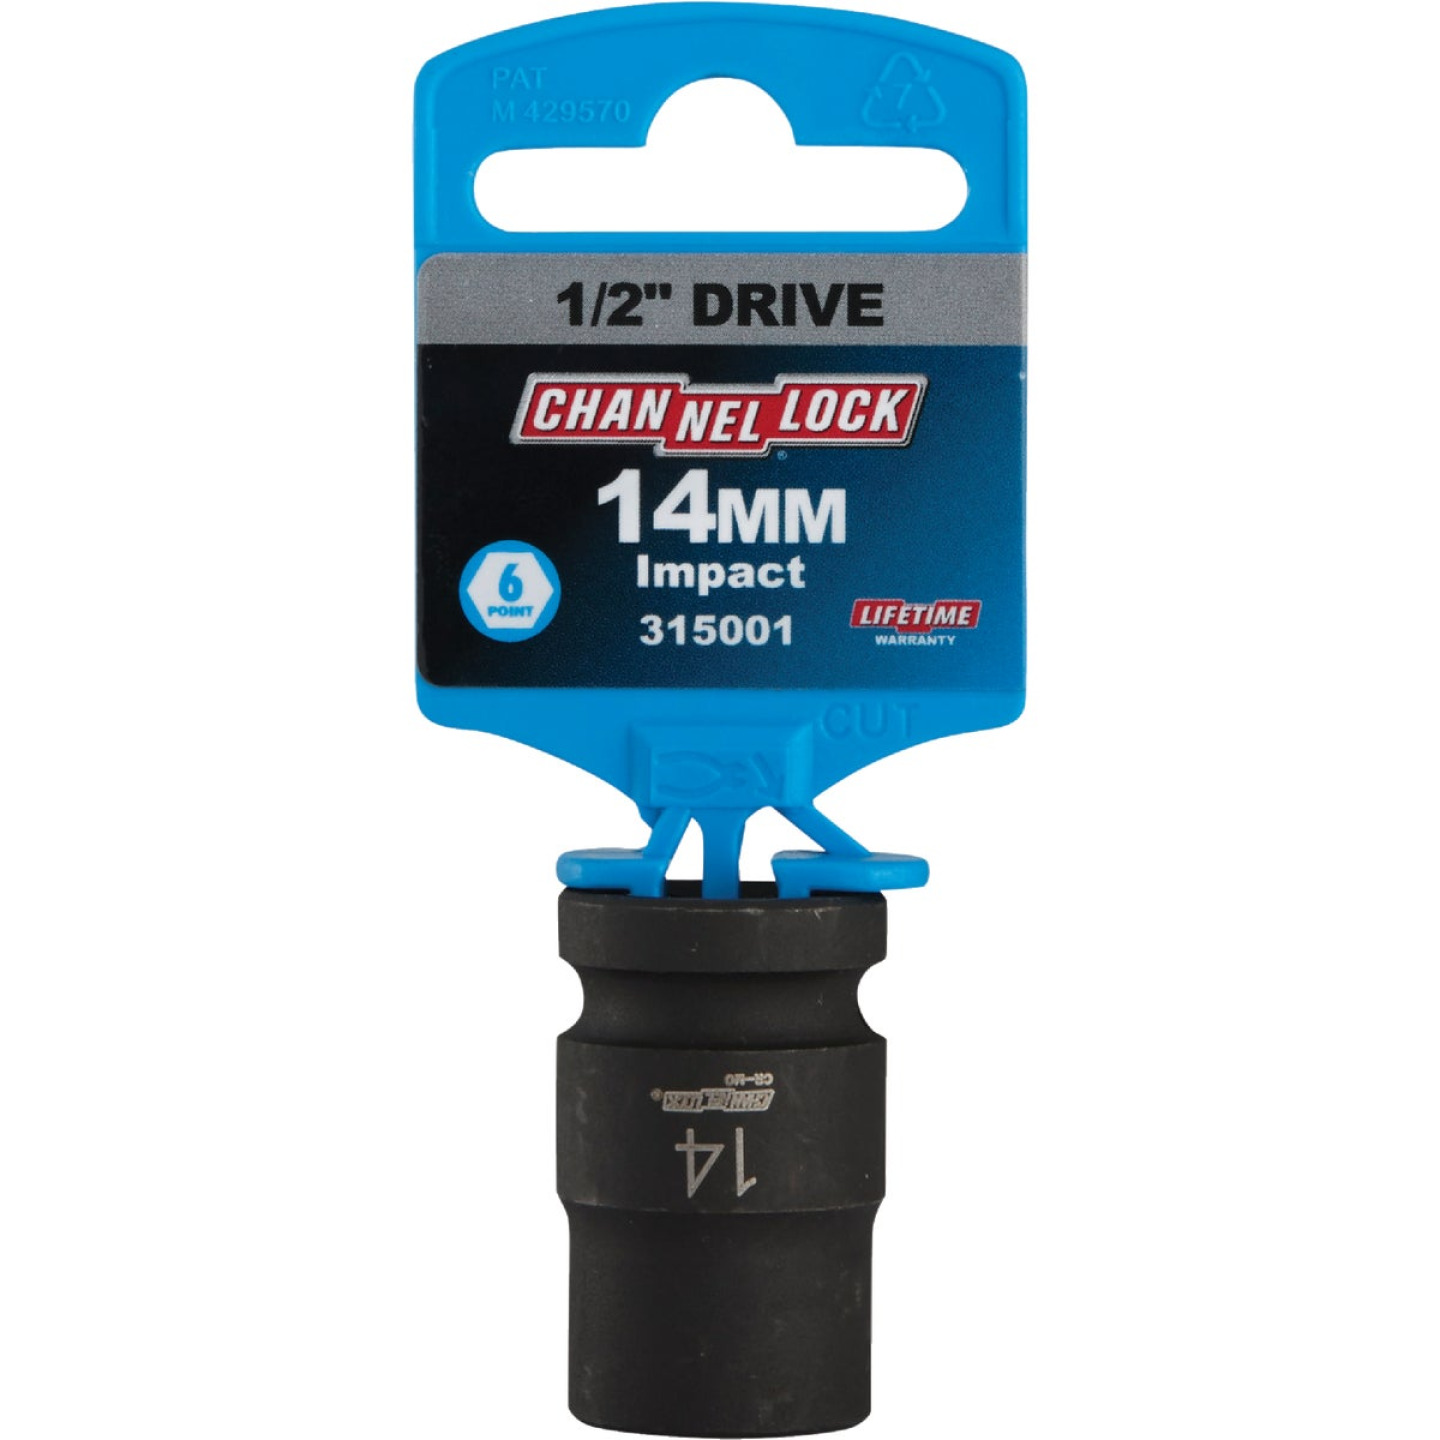 Channellock 1/2 In. Drive 14 mm 6-Point Shallow Metric Impact Socket Image 2